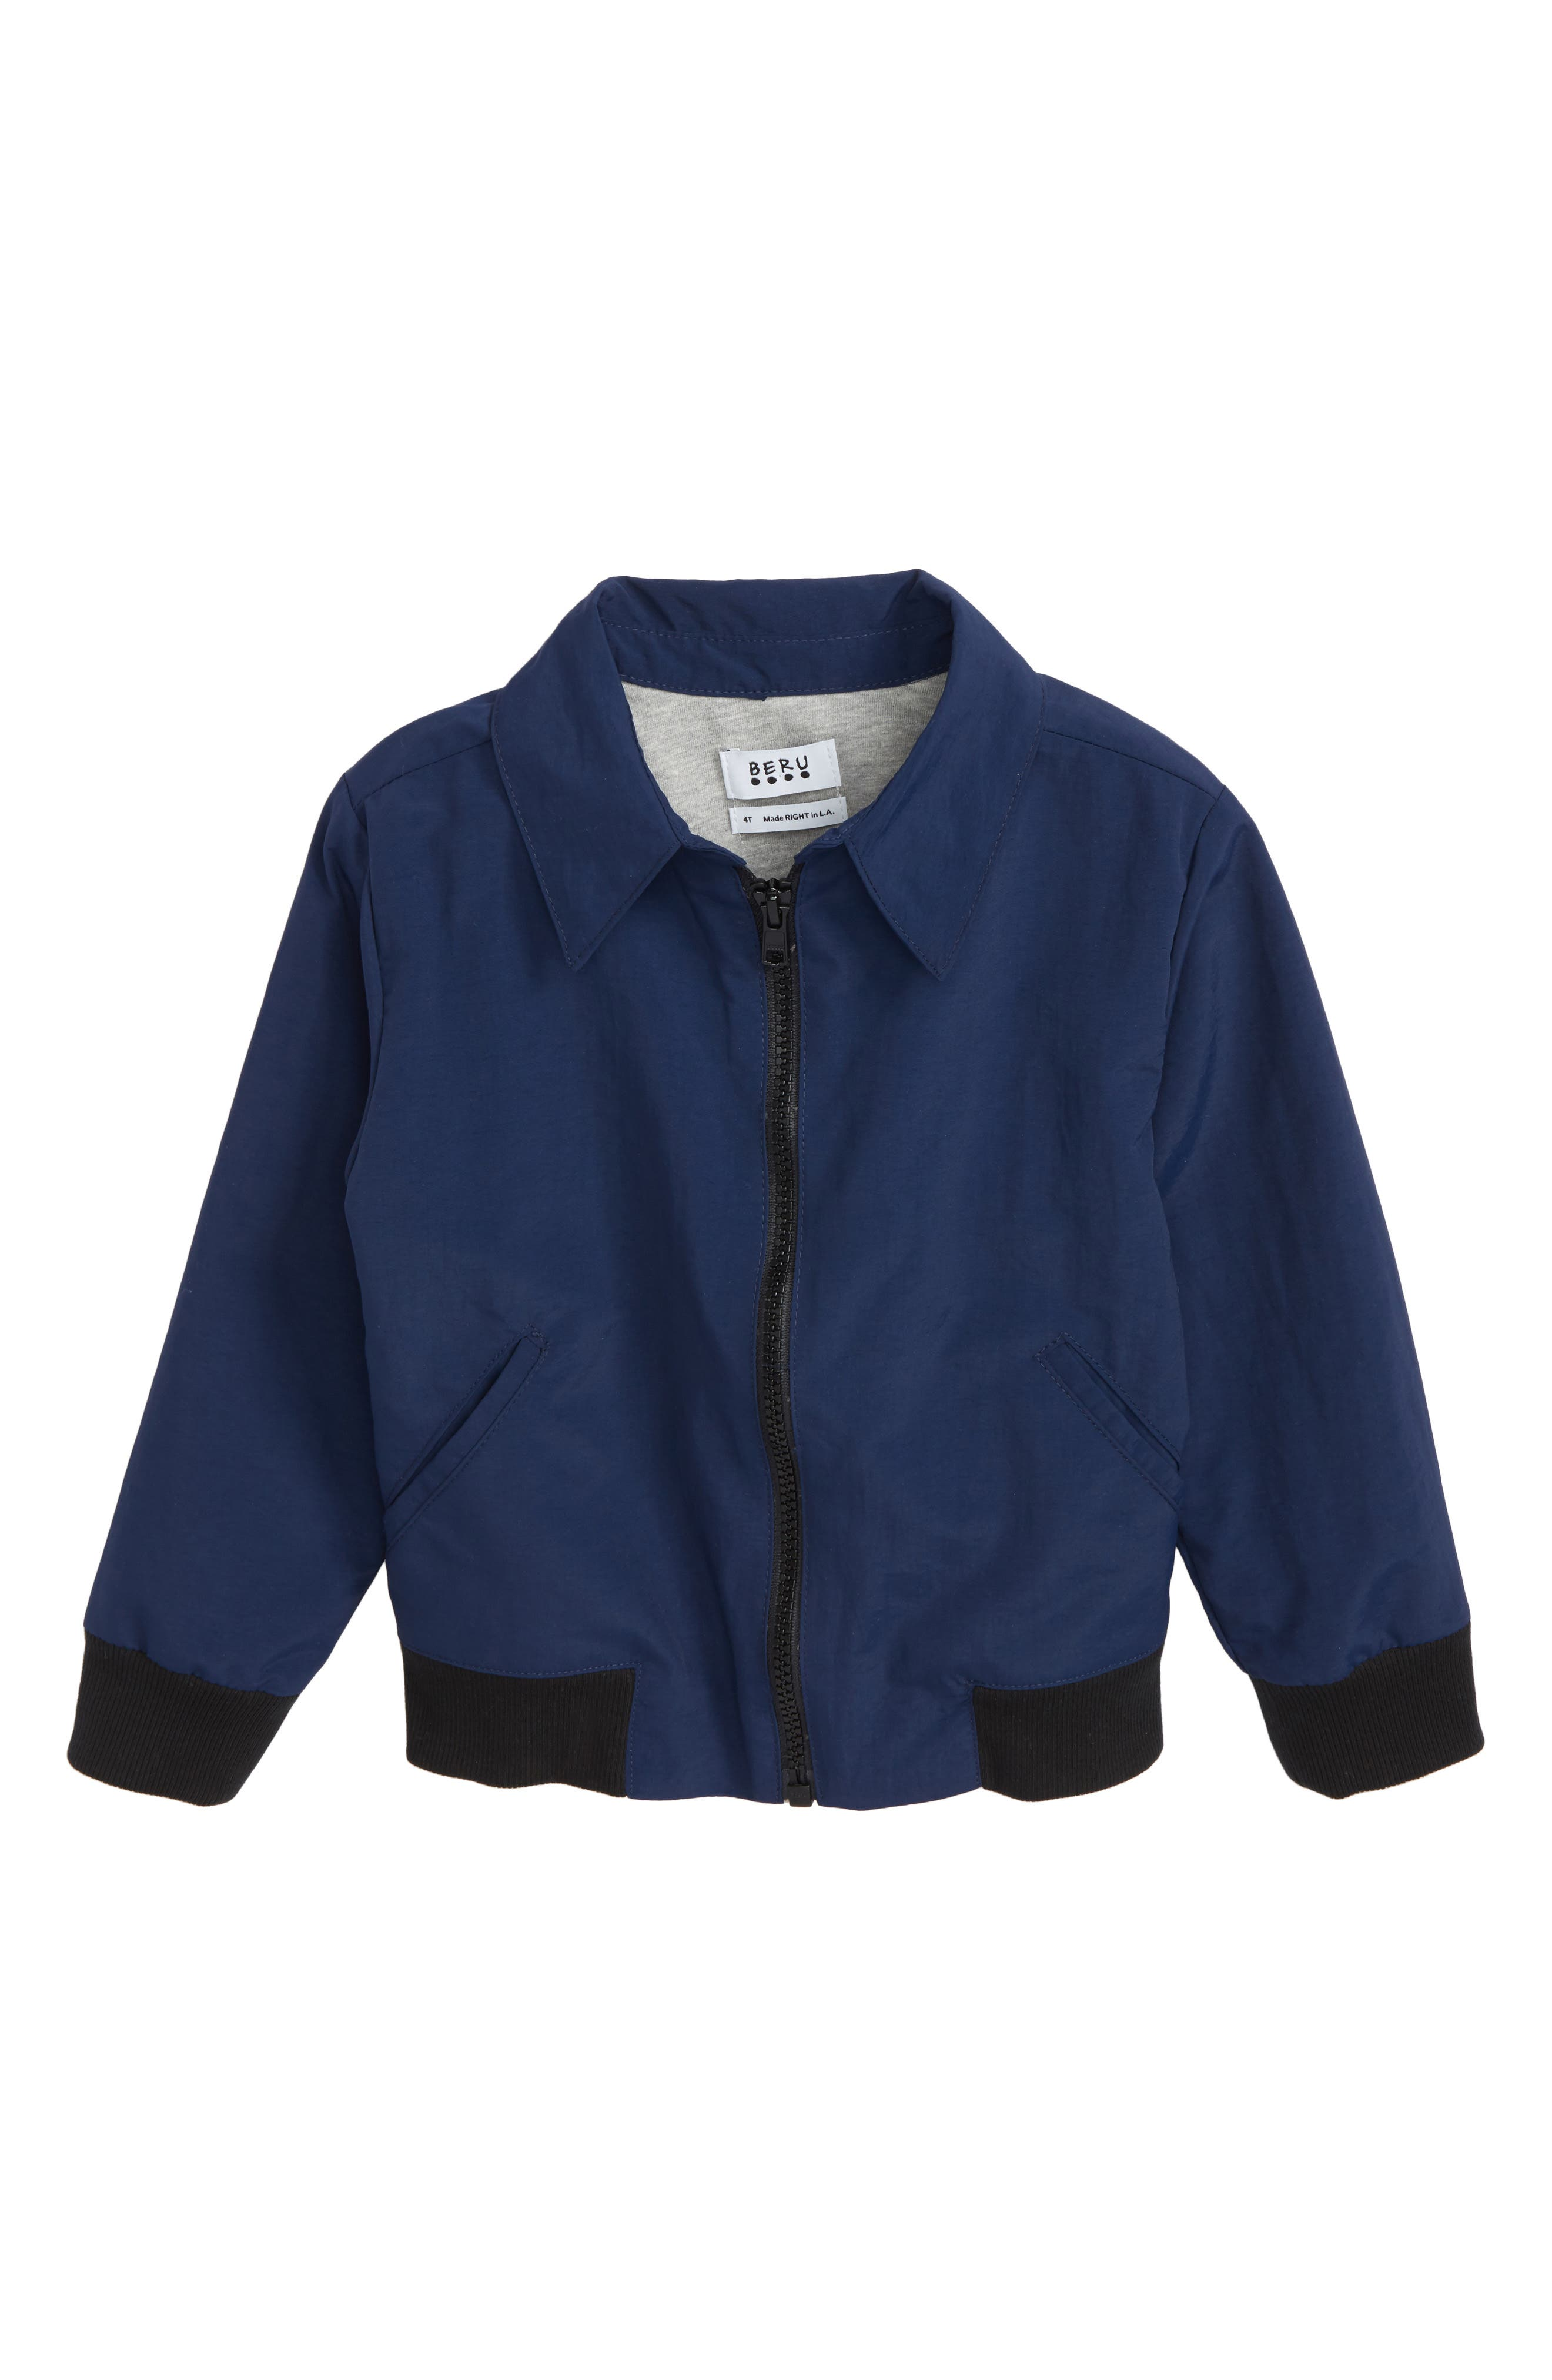 Riles Jacket,                             Main thumbnail 1, color,                             Navy